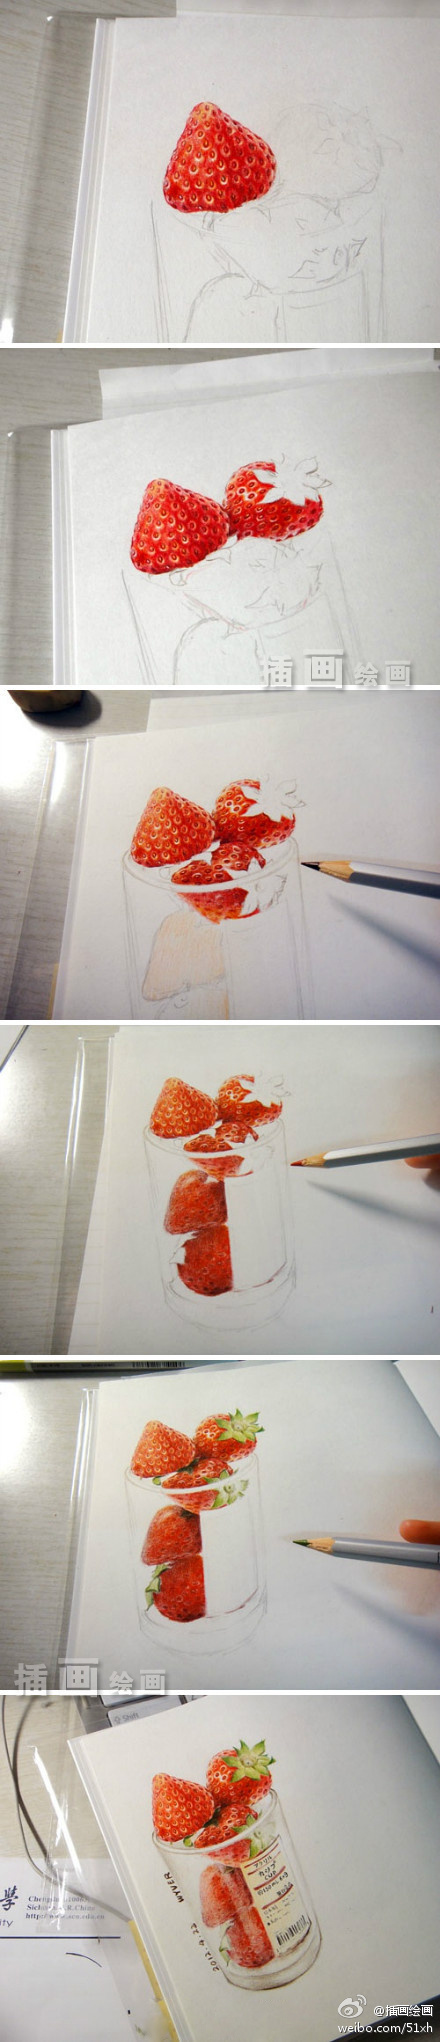 Photorealistic drawing/painting